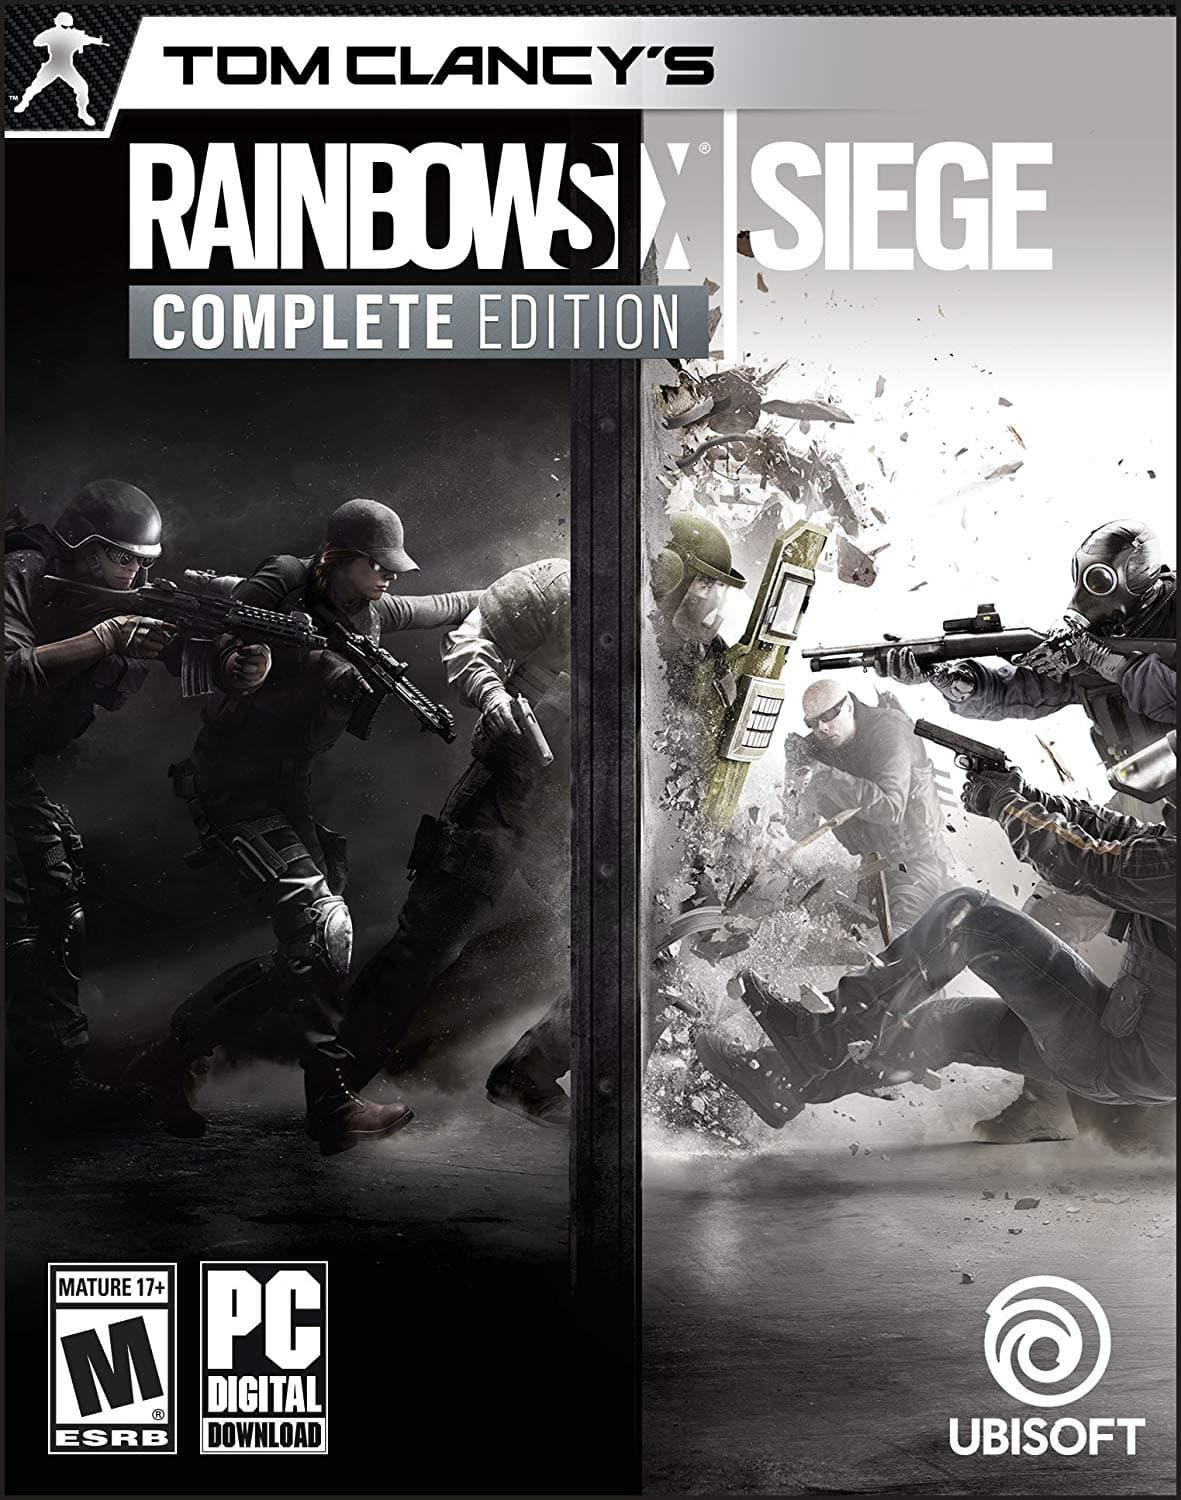 PCDD: Tom Clancy's Rainbow Six Siege Year 3 Complete Edition